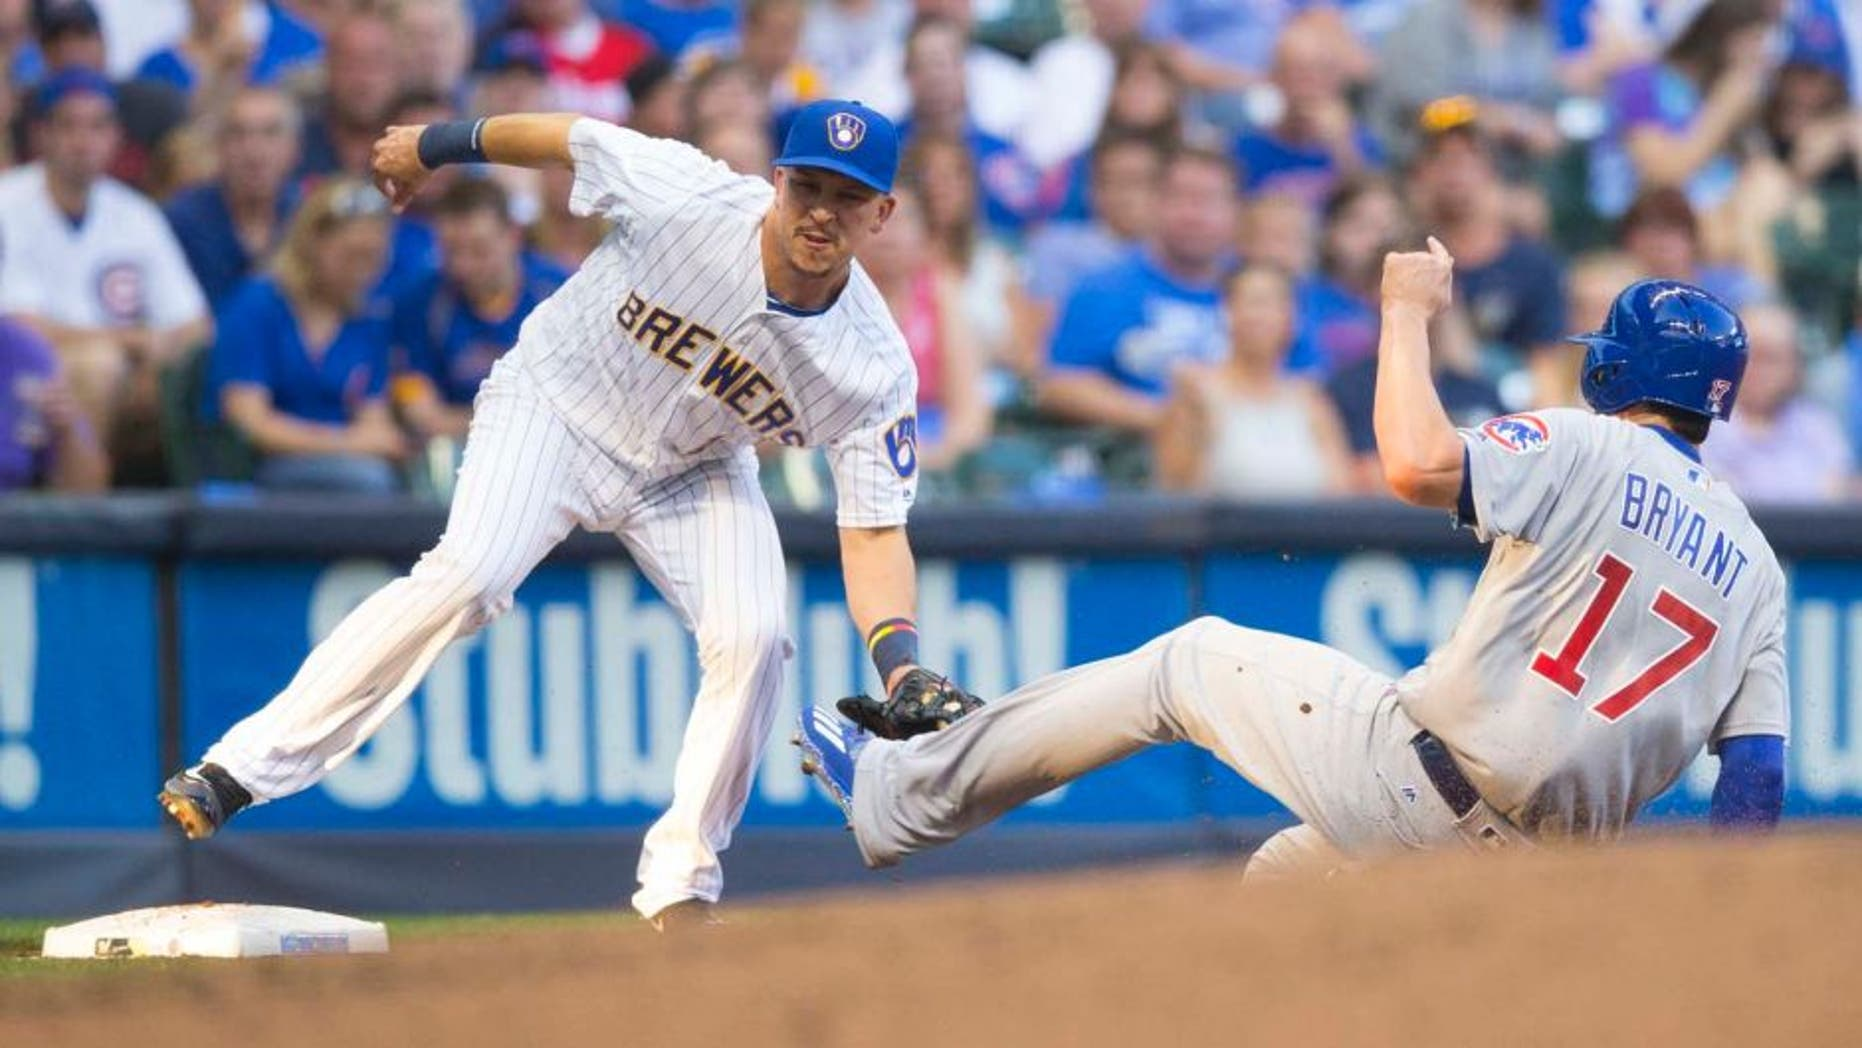 Friday, July 22, 2016: Milwaukee Brewers third baseman Hernan Perez (left) tags out Chicago Cubs third baseman Kris Bryant at third base during the second inning at Miller Park. The Brewers lost 5-2.